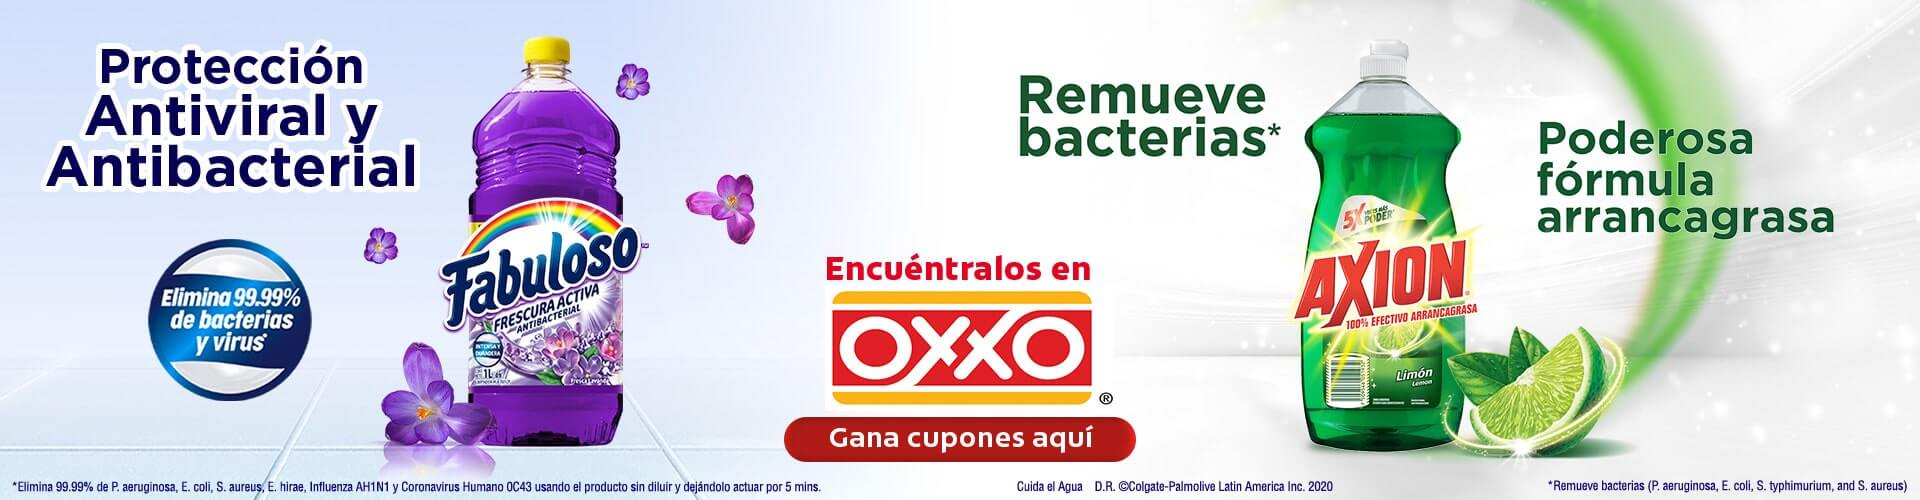 OXXO Home Axion Fabuloso P1 2021